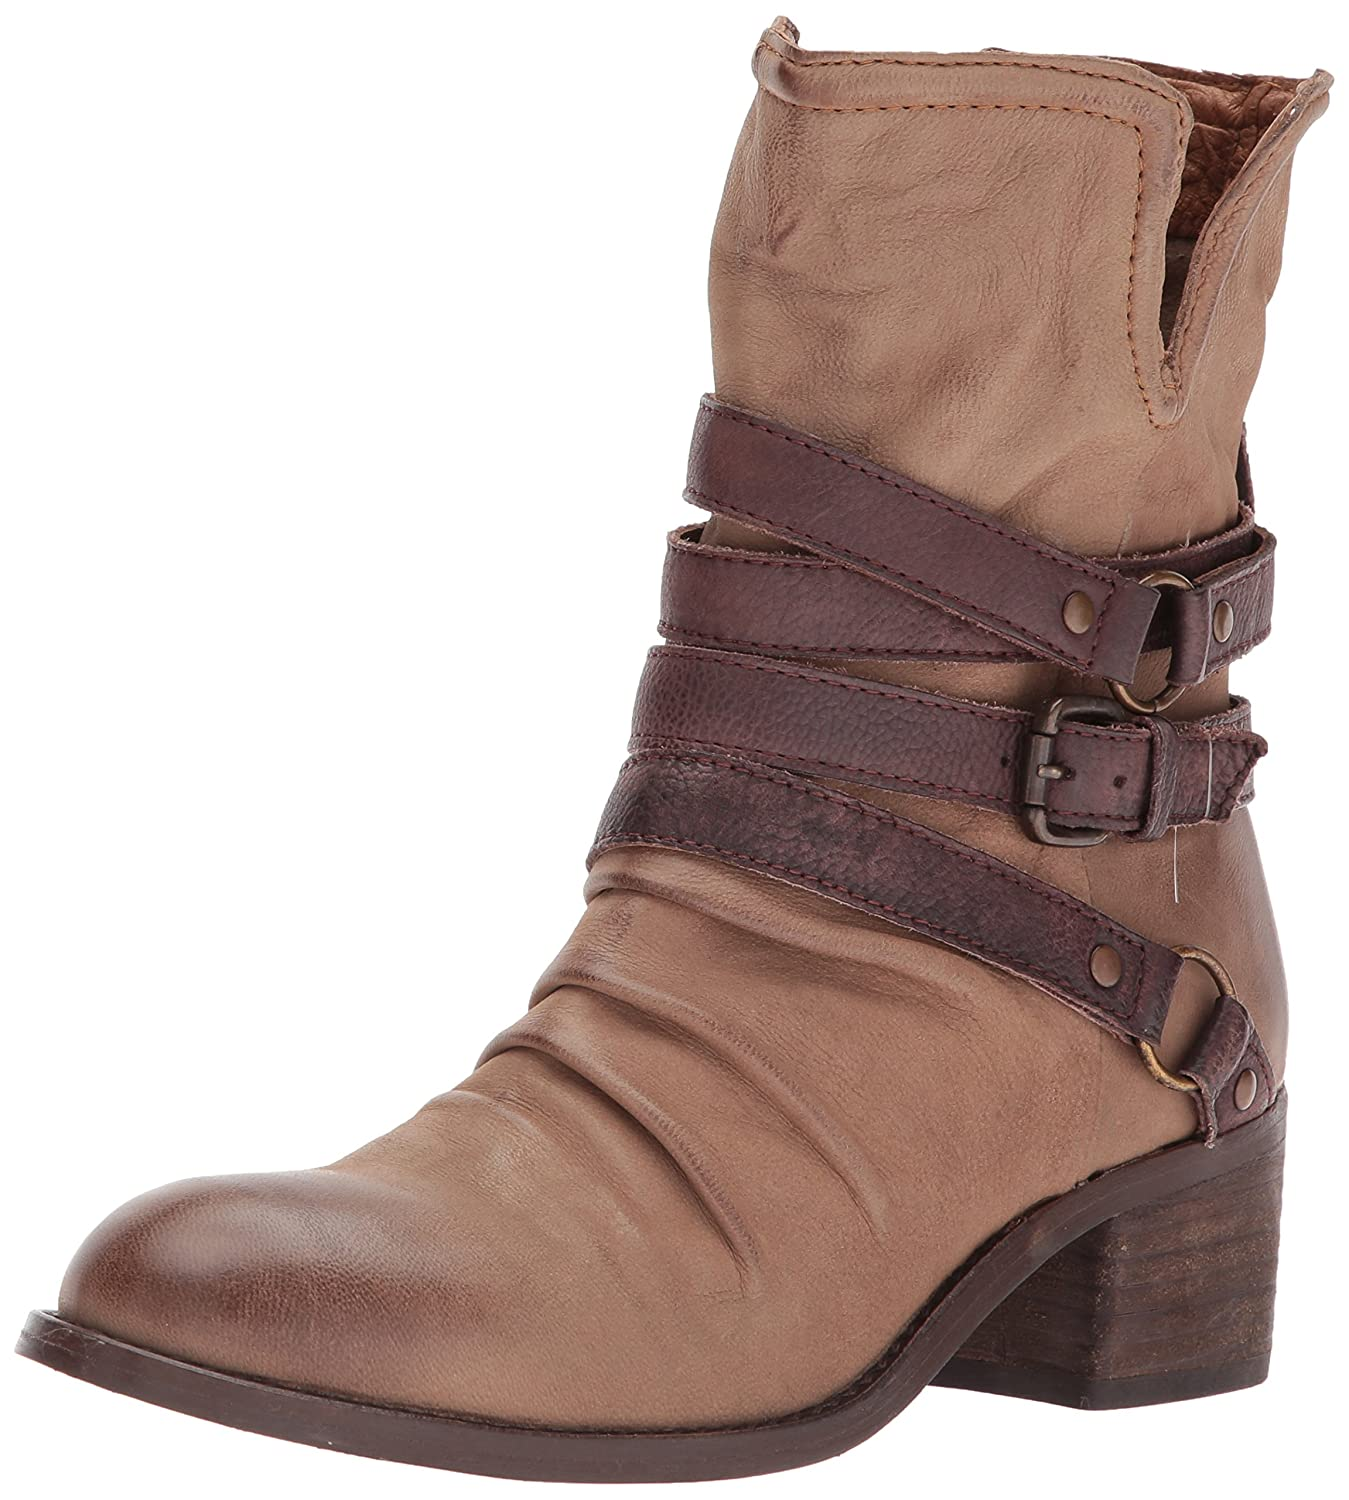 Sbicca Women's Endora Engineer Boot B06XFZ79SF 10 B(M) US|Taupe